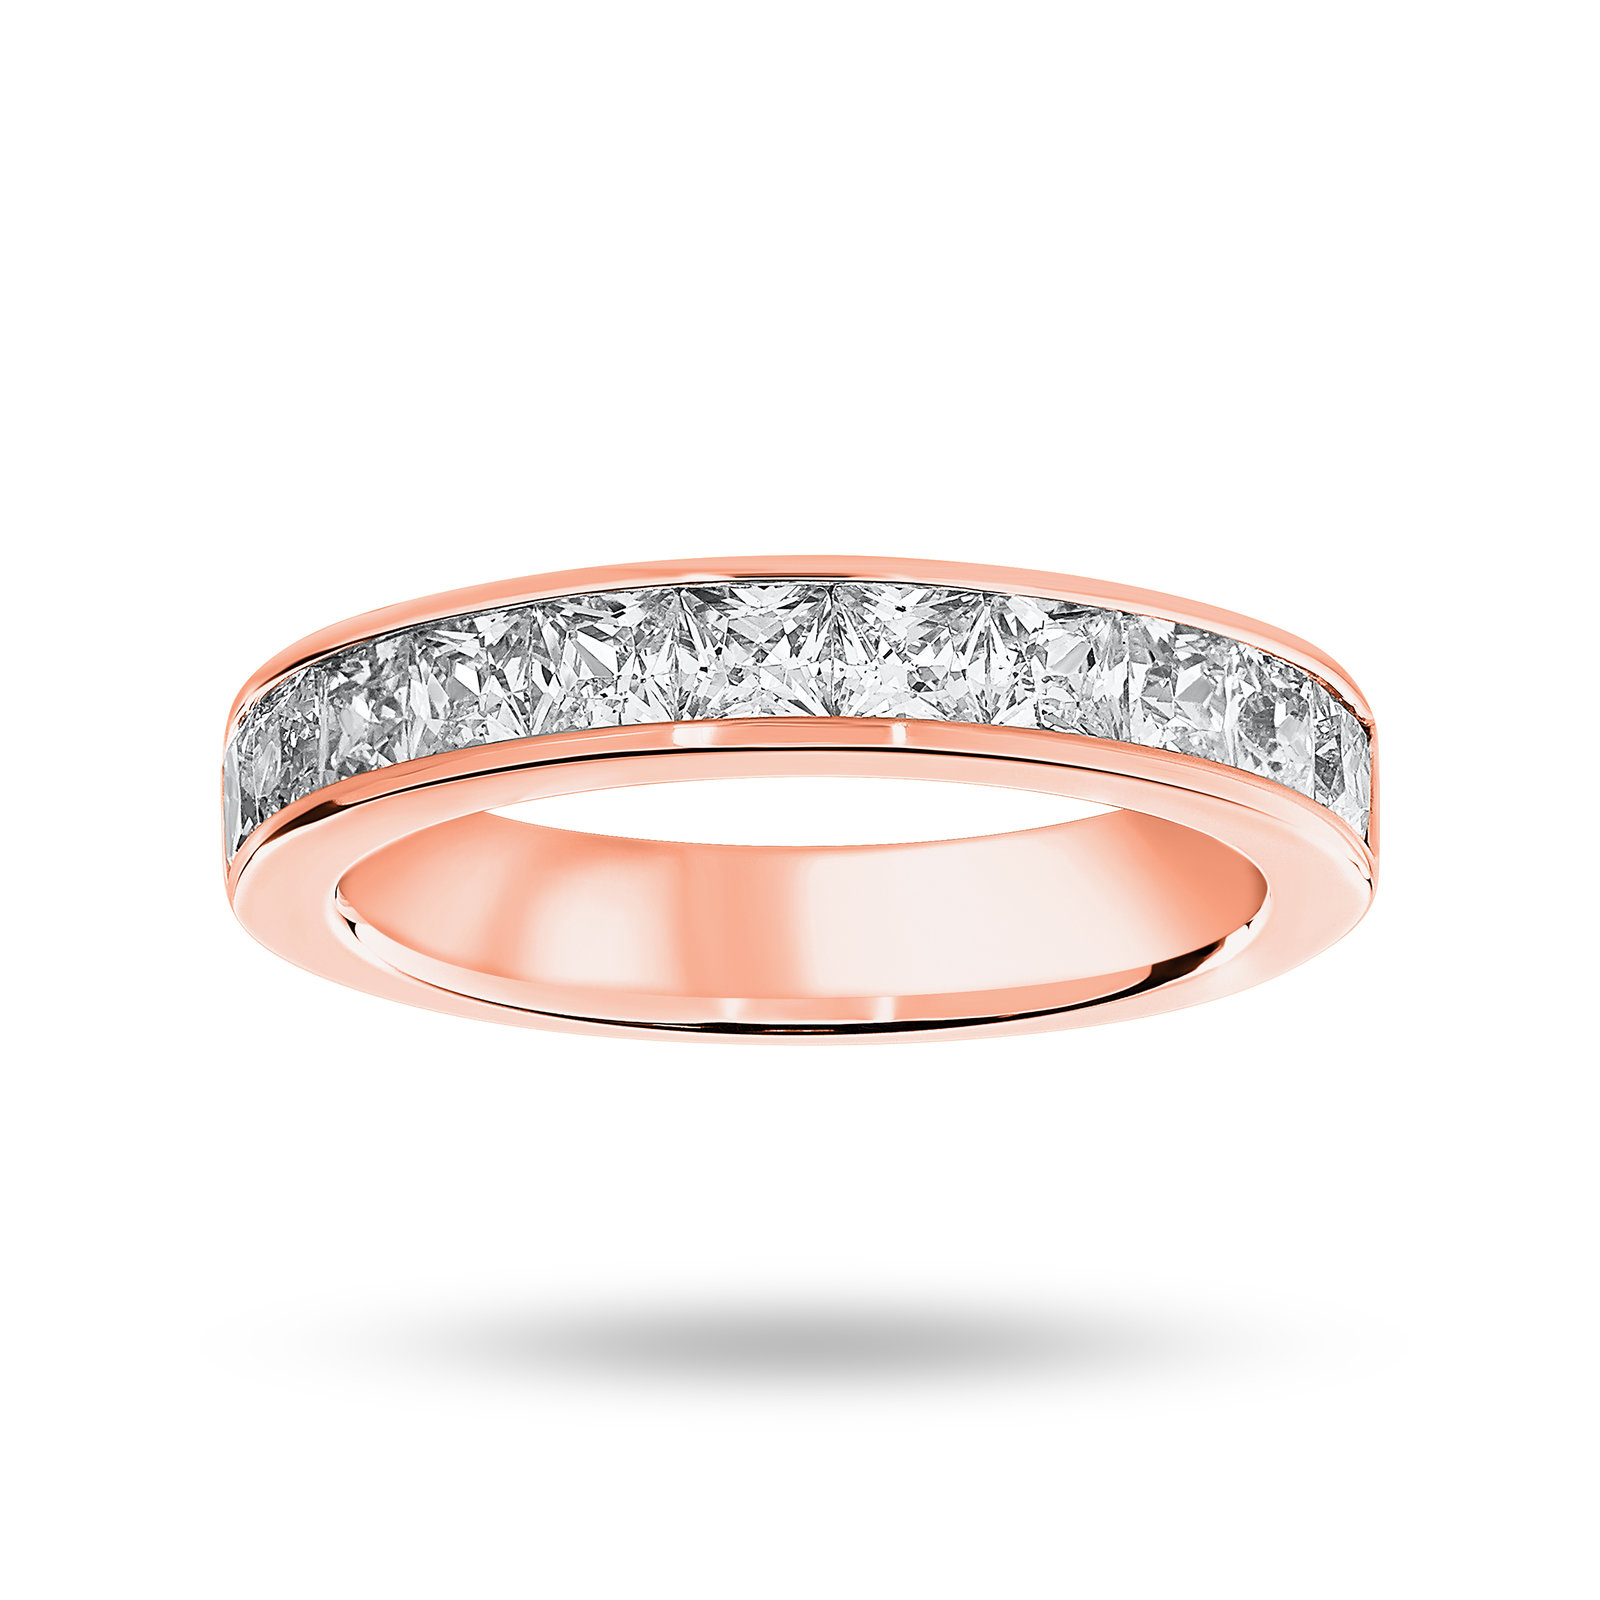 18 Carat Rose Gold 1.50 Carat Princess Cut Half Eternity Ring